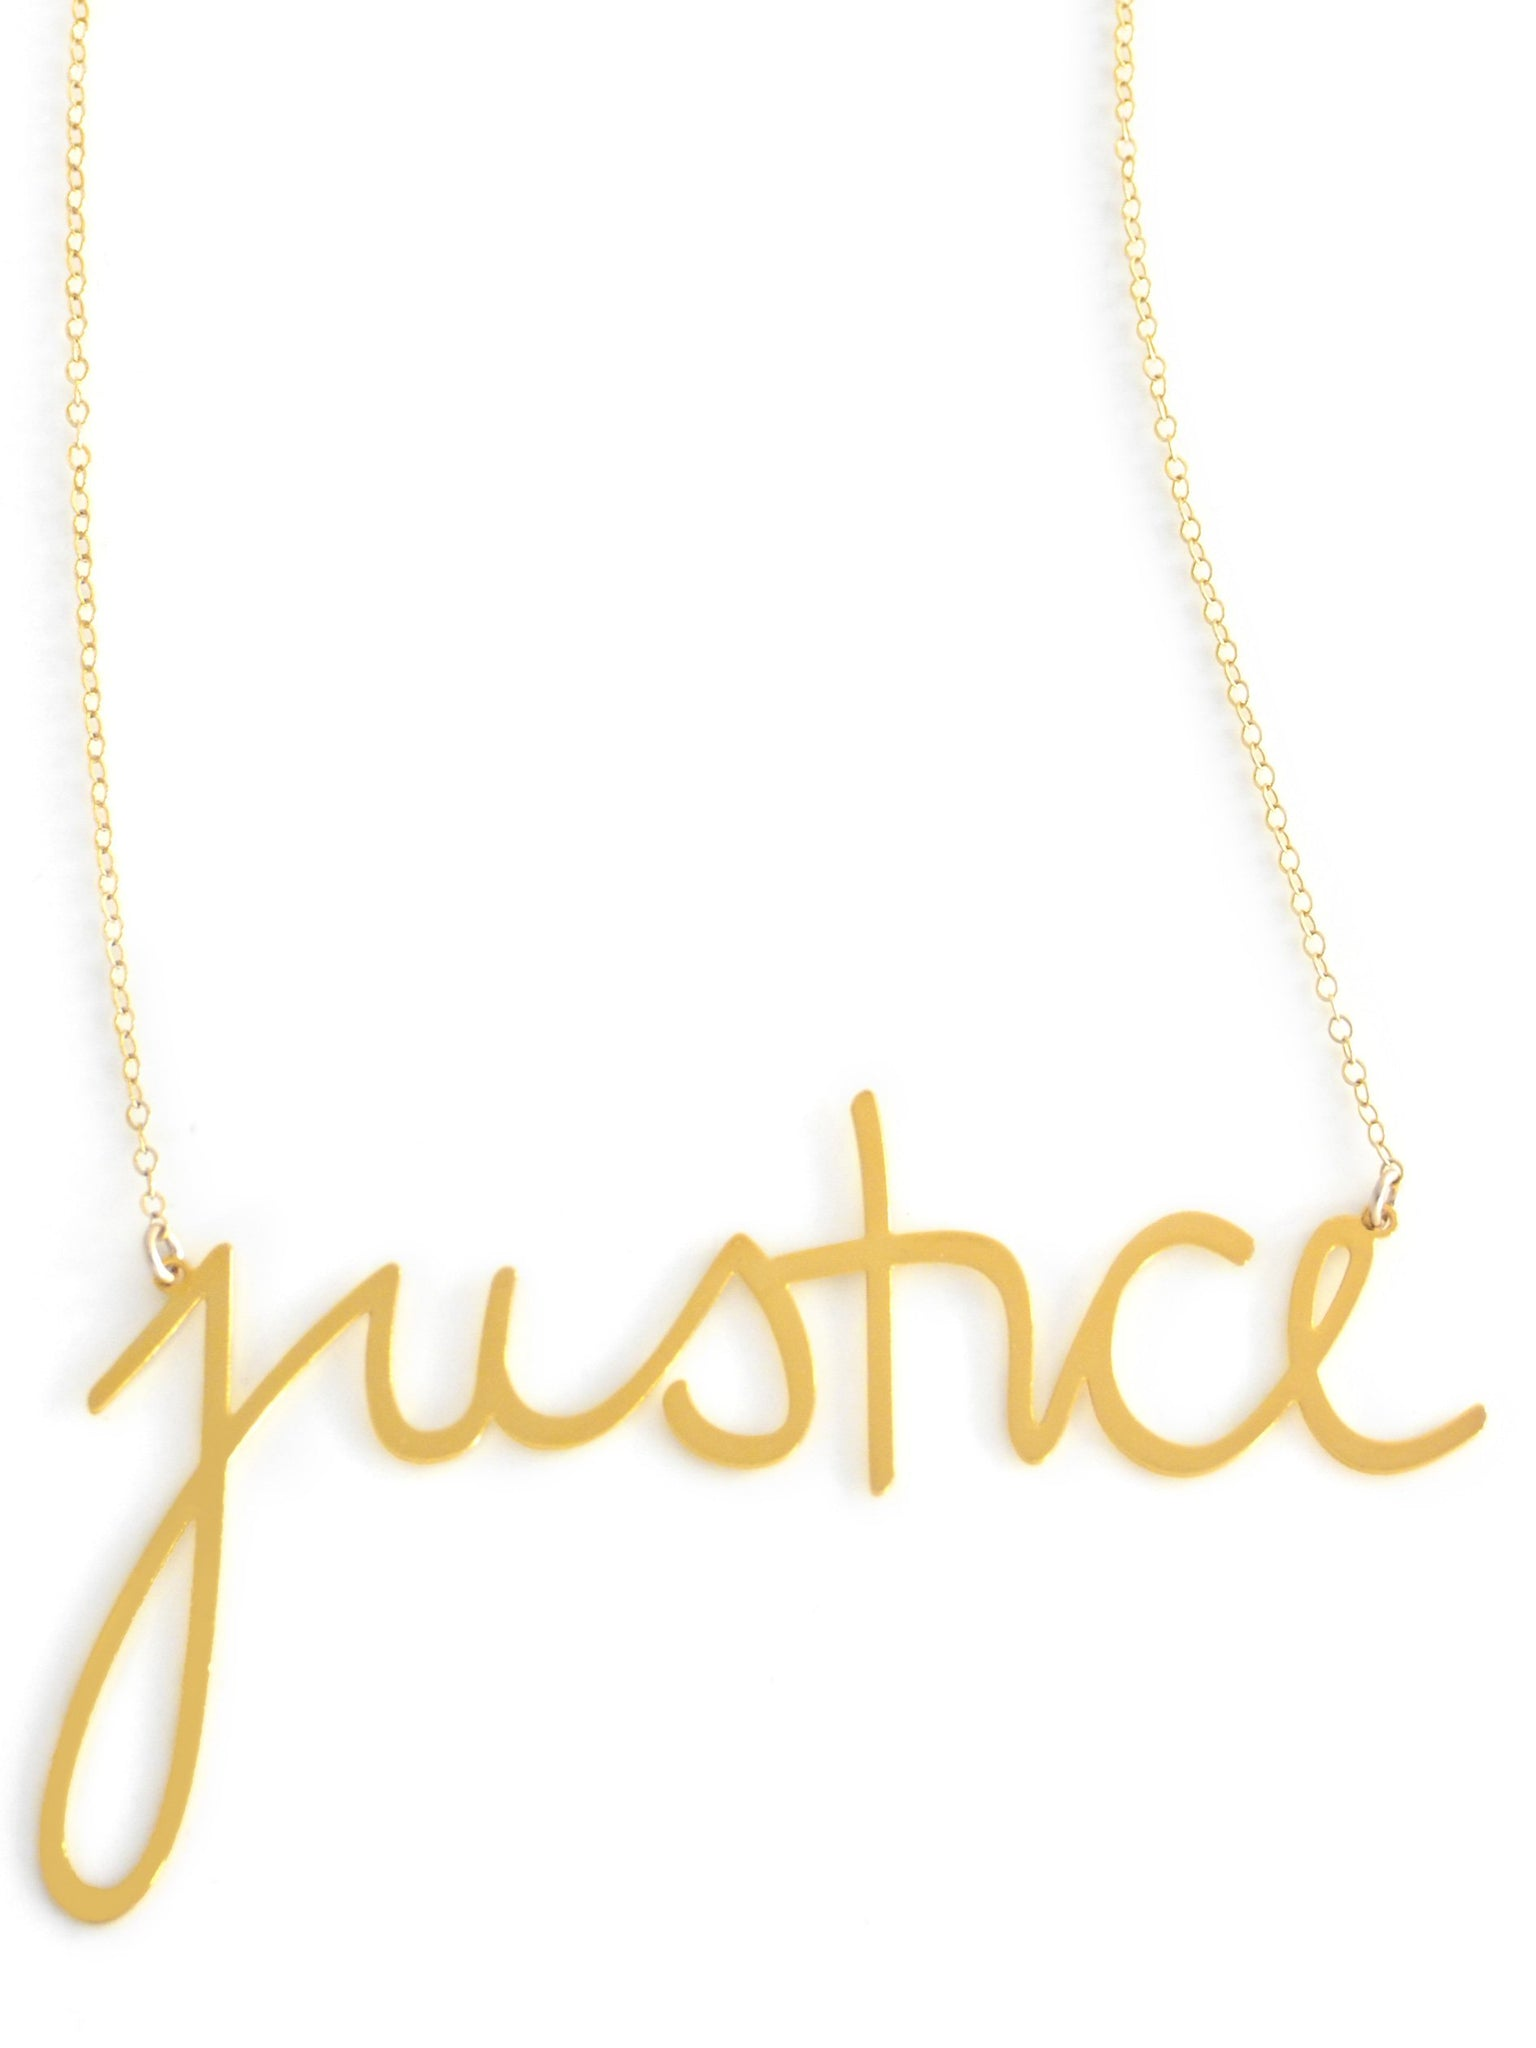 Justice Necklace - Brevity Jewelry - Made in USA - Affordable Gold and Silver Jewelry